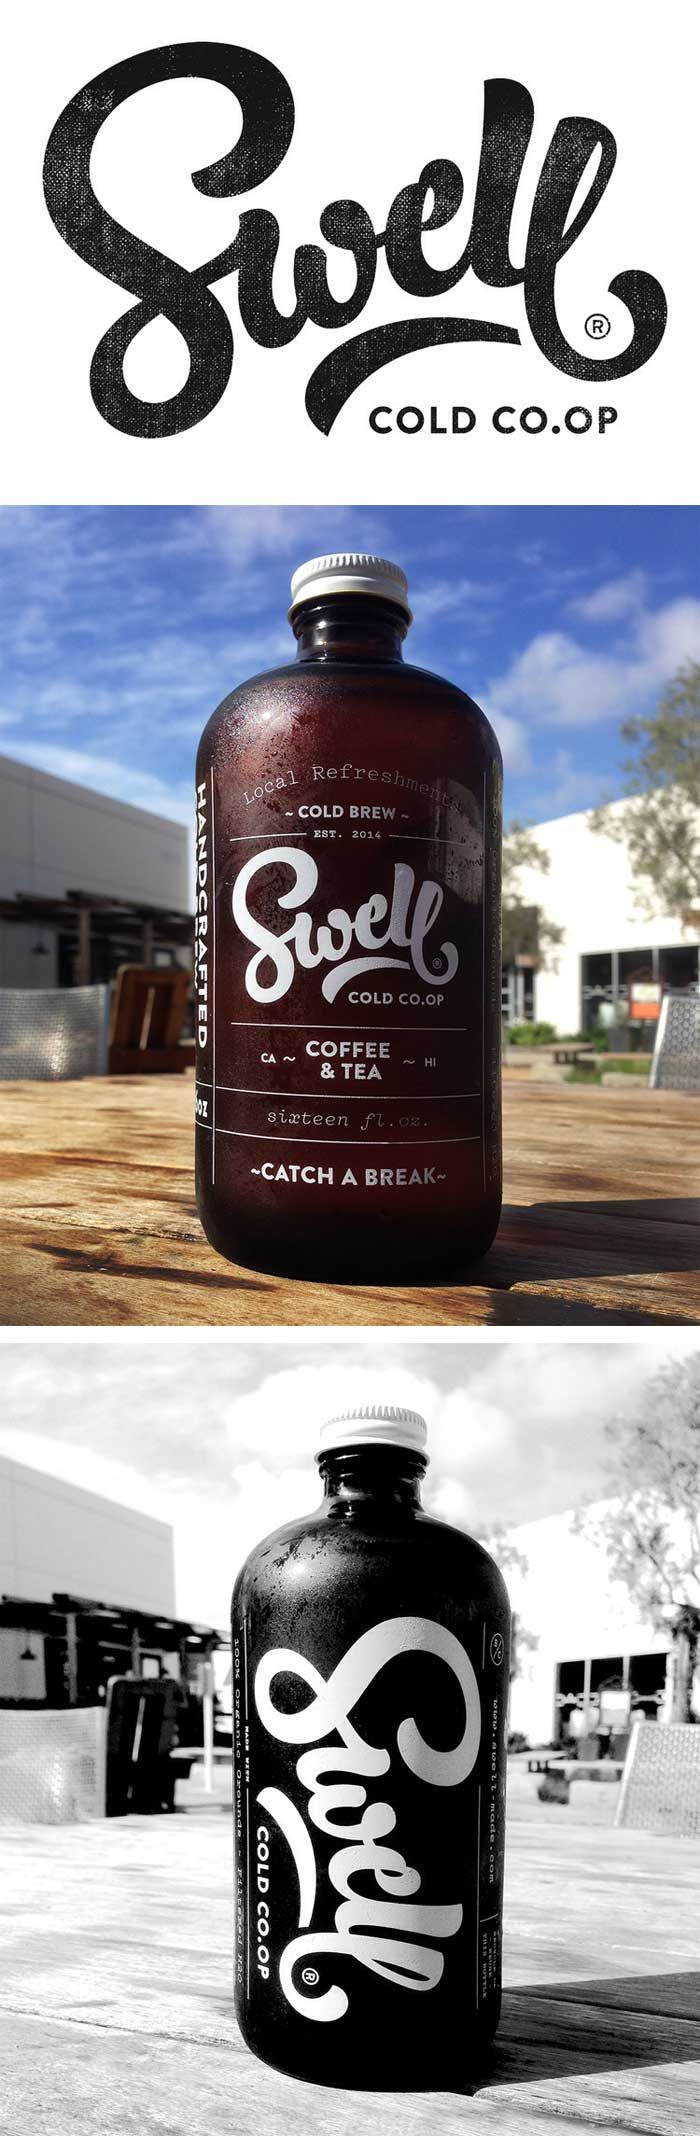 Coffee & Currency / on Design Work Life This is swell #packaging PD